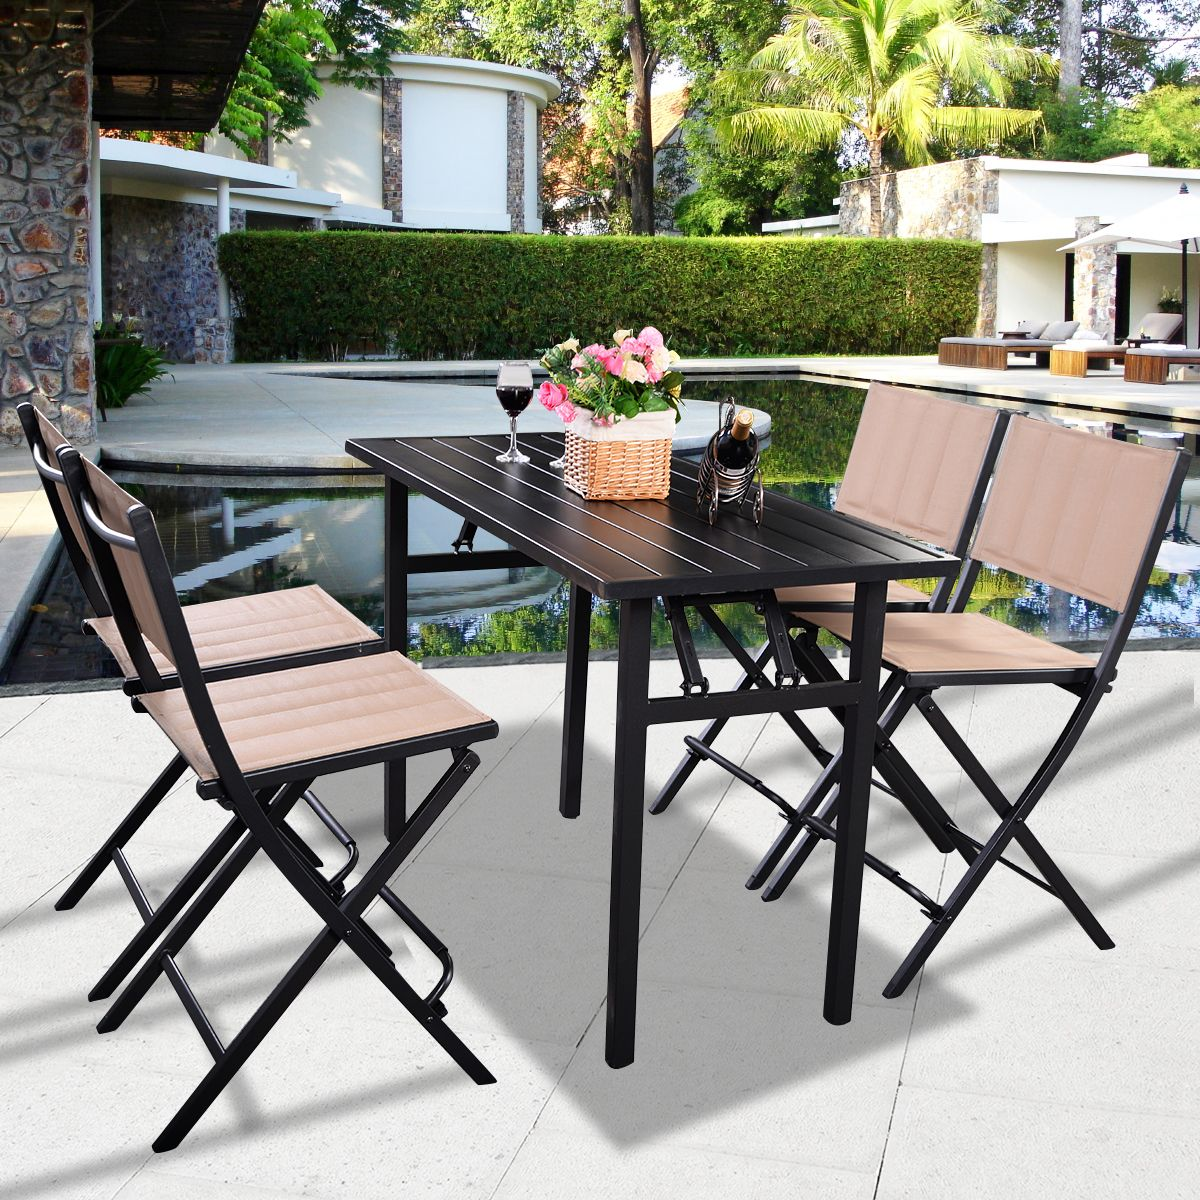 costway 5 pcs patio outdoor folding chairs rect table furniture set